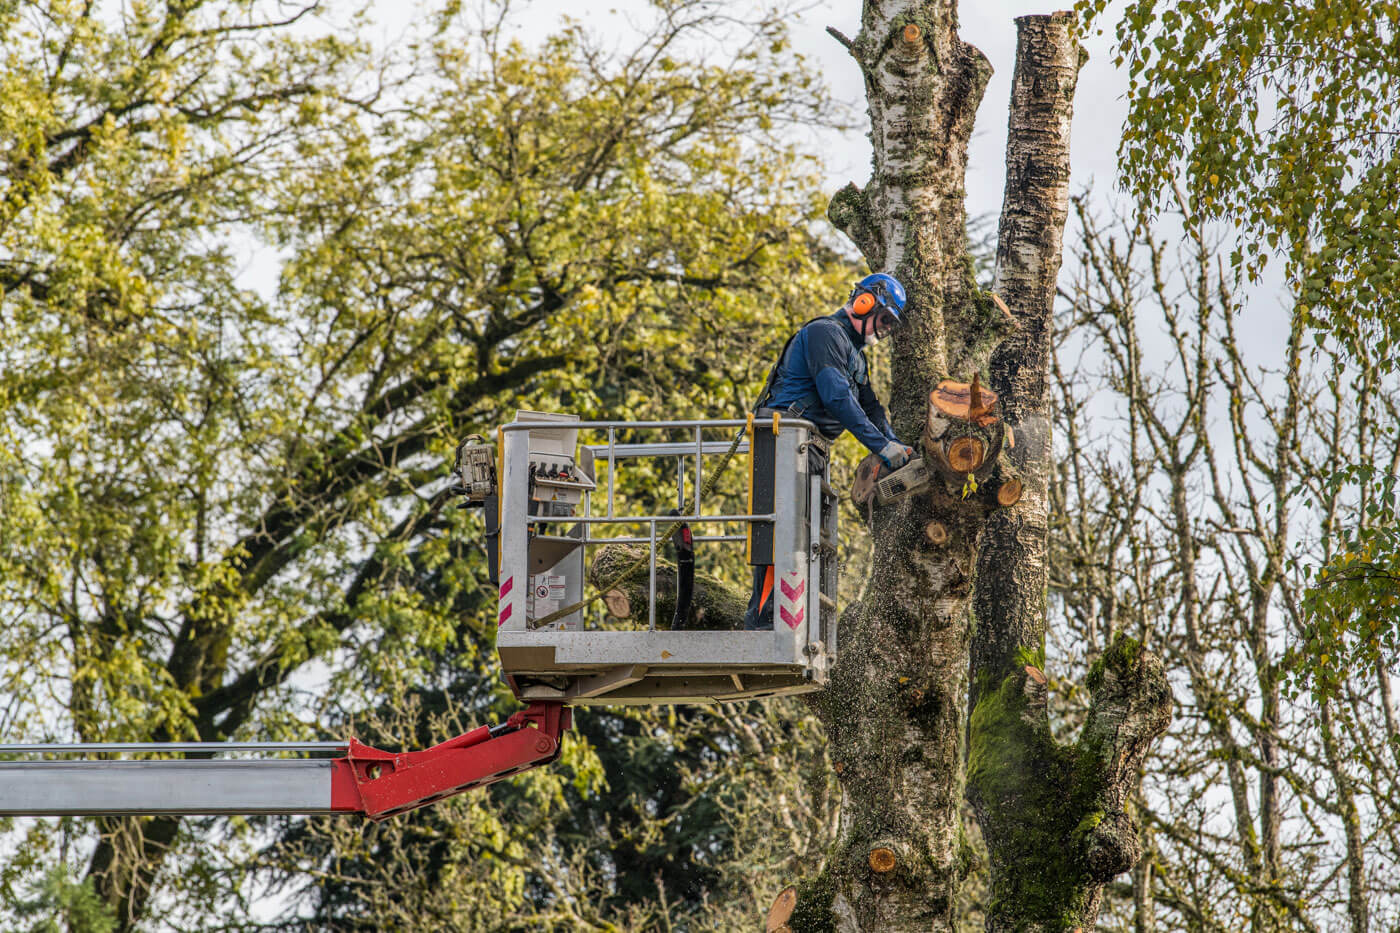 Tree Trimming-National City CA Tree Trimming and Stump Grinding Services-We Offer Tree Trimming Services, Tree Removal, Tree Pruning, Tree Cutting, Residential and Commercial Tree Trimming Services, Storm Damage, Emergency Tree Removal, Land Clearing, Tree Companies, Tree Care Service, Stump Grinding, and we're the Best Tree Trimming Company Near You Guaranteed!